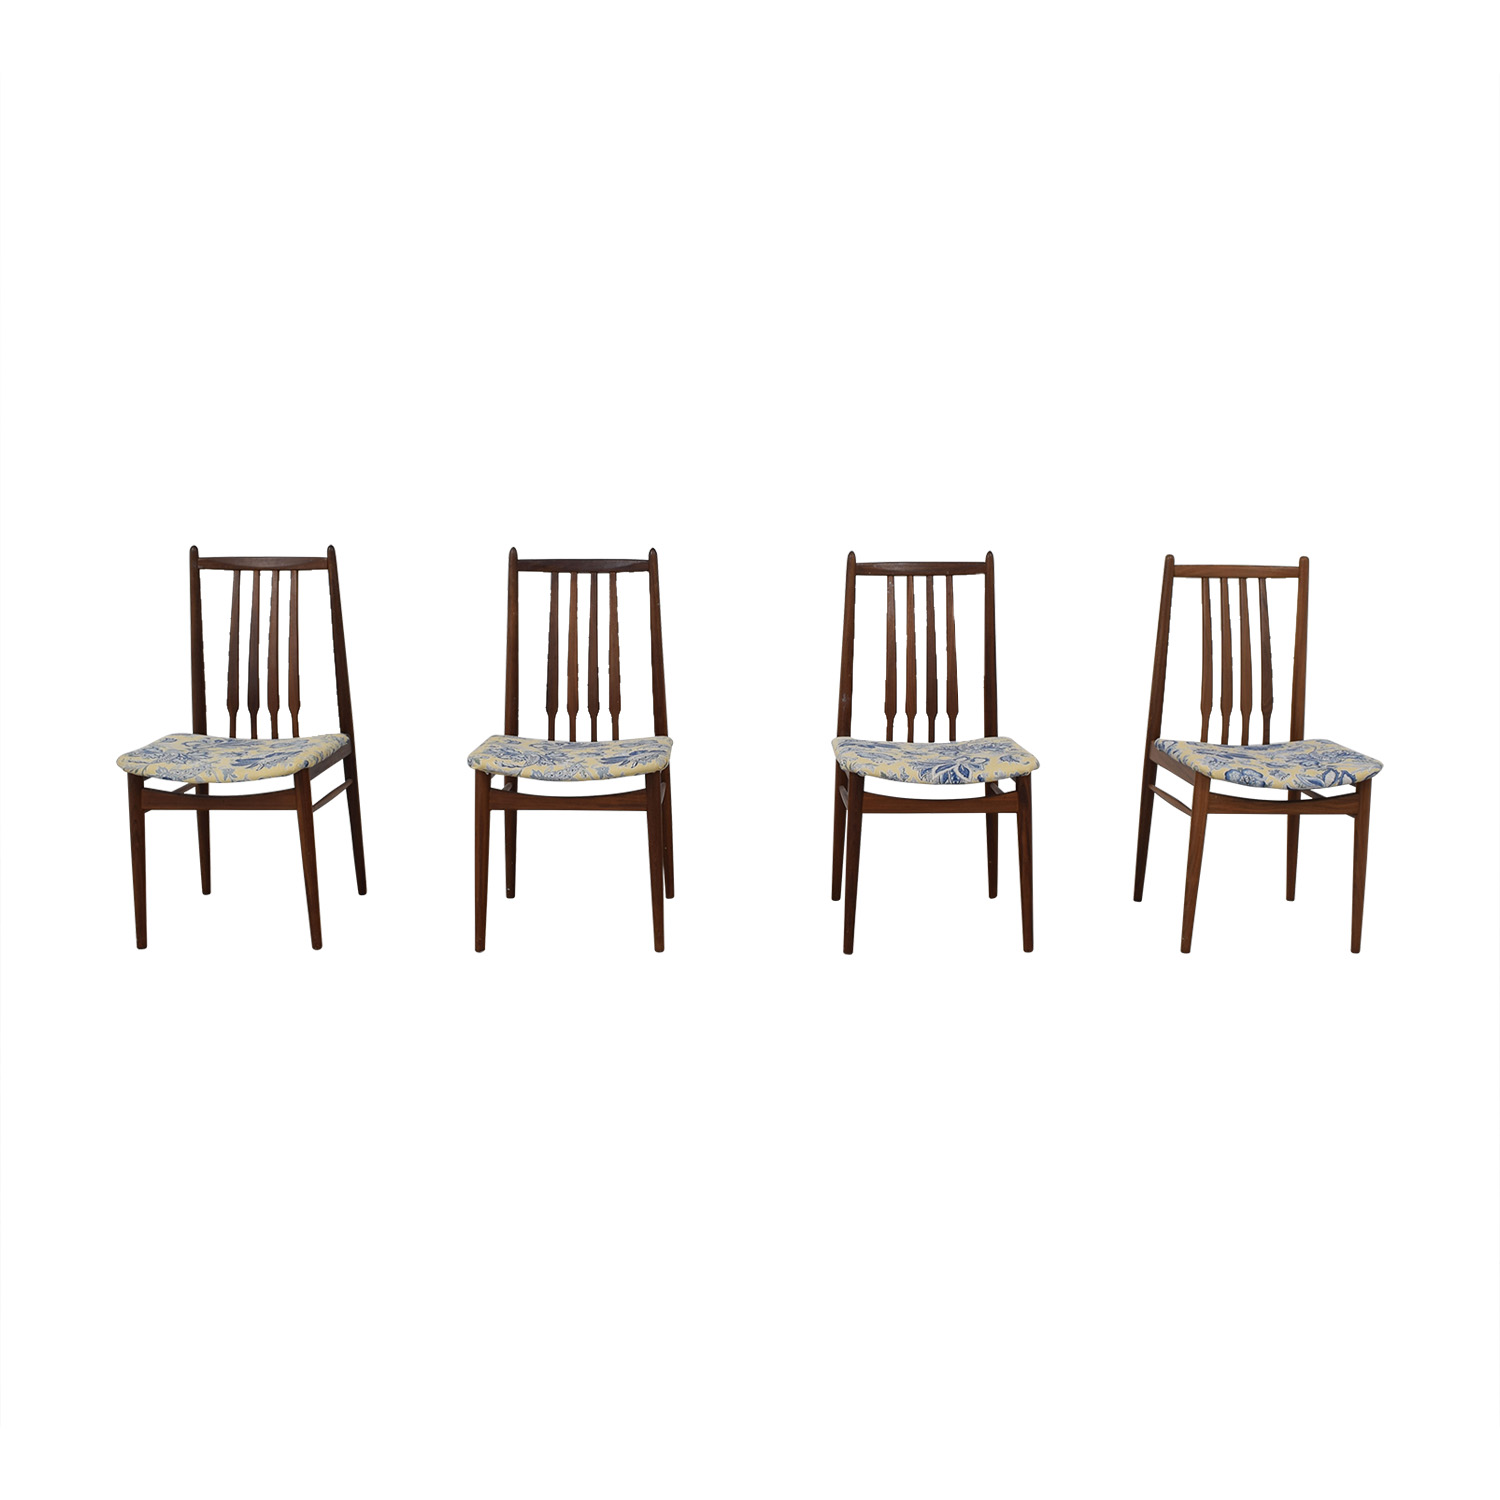 Scandinavian Wooden Chairs Dining Chairs